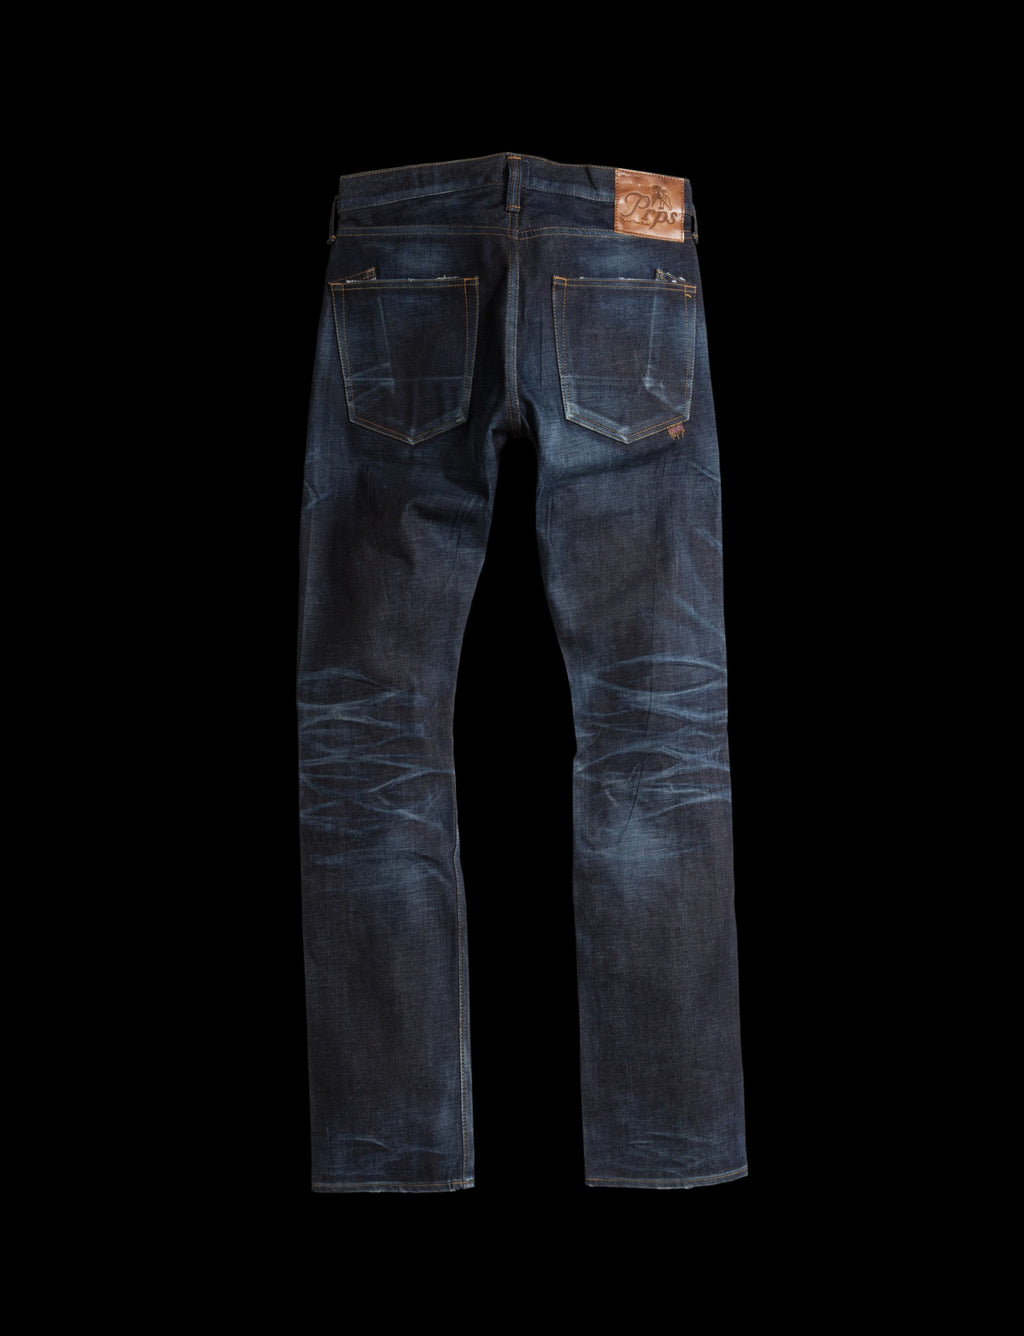 Prps - Demon - Dock - Jeans - Prps